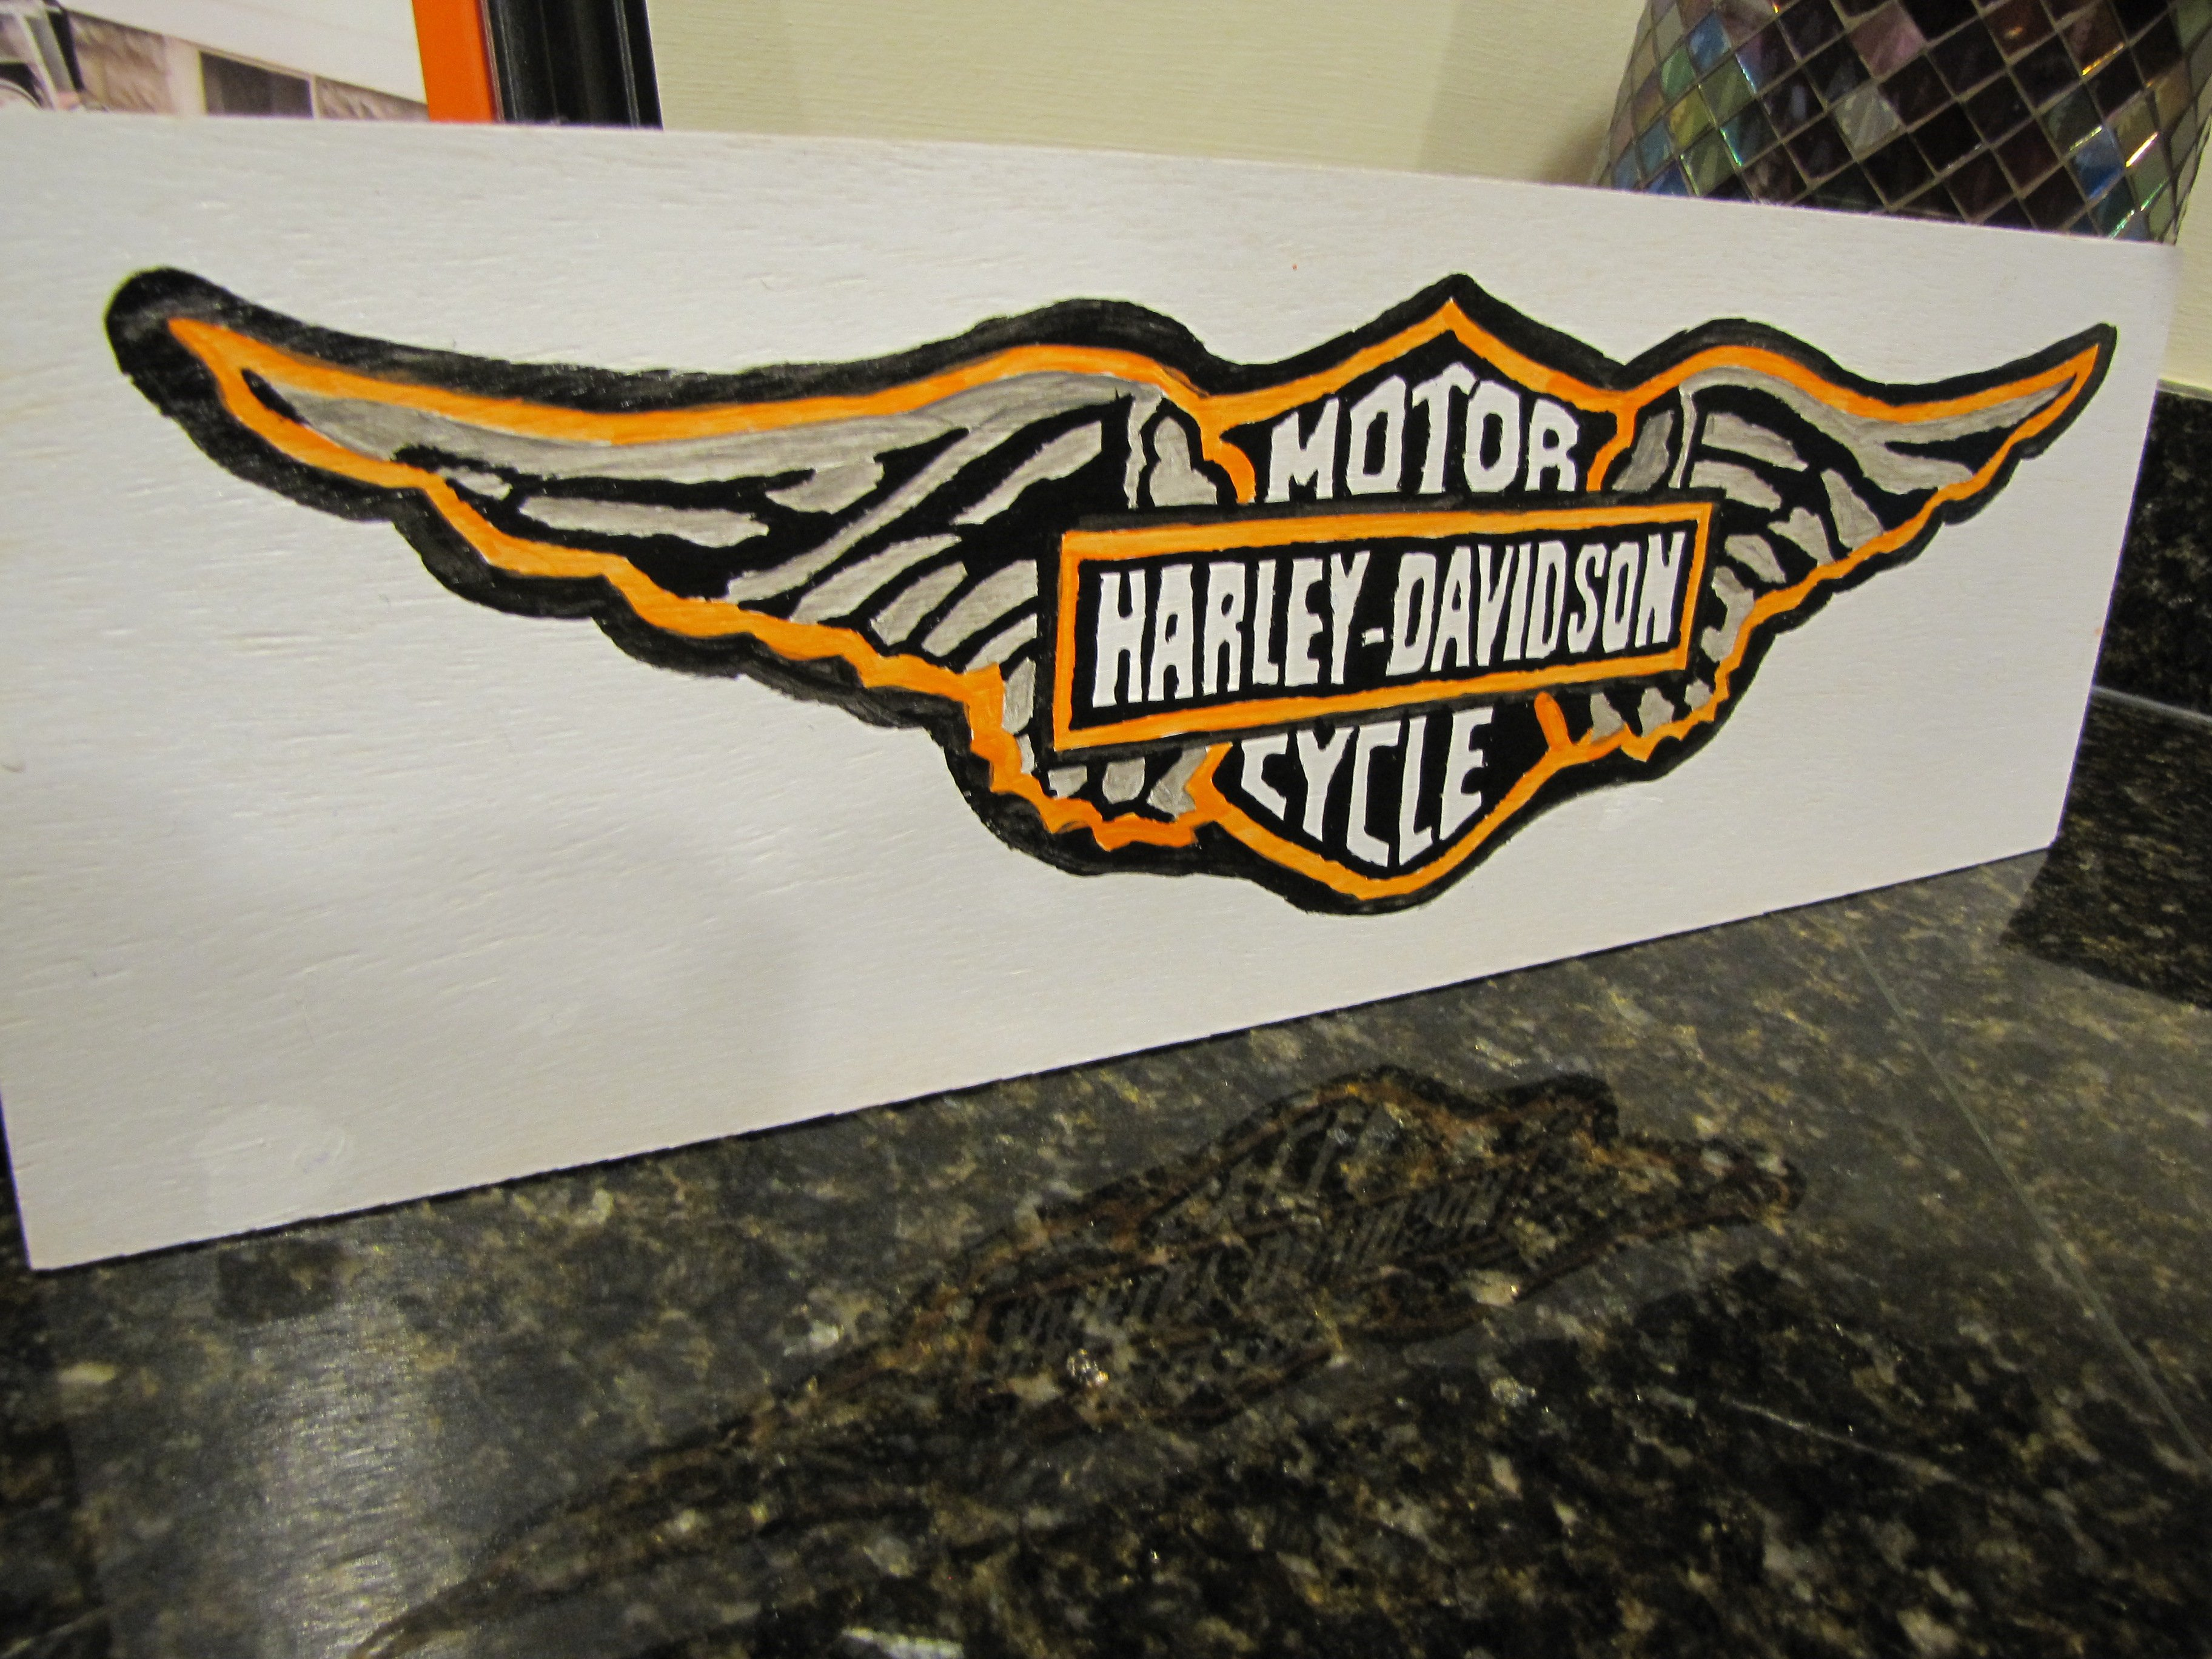 harley davidson hand painted signs gathered in the kitchen